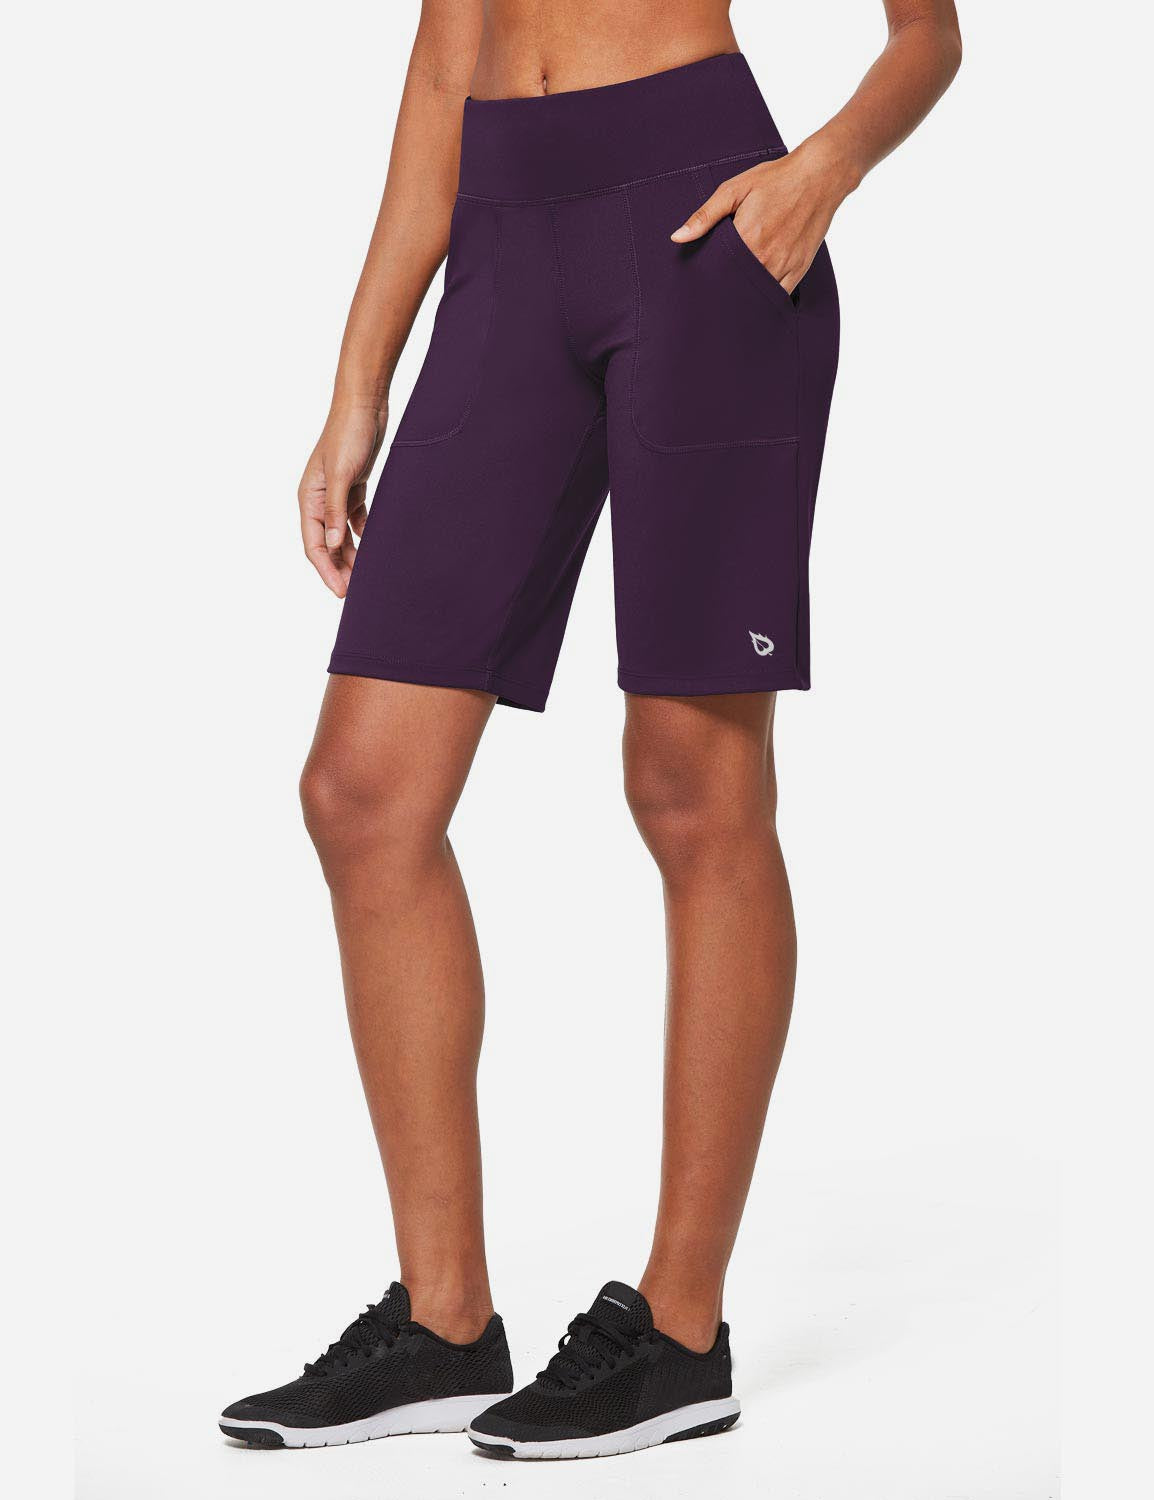 Baleaf Womens Mid Rise Tummy Control Pocketed Lounge Bermuda Shorts Purple Full